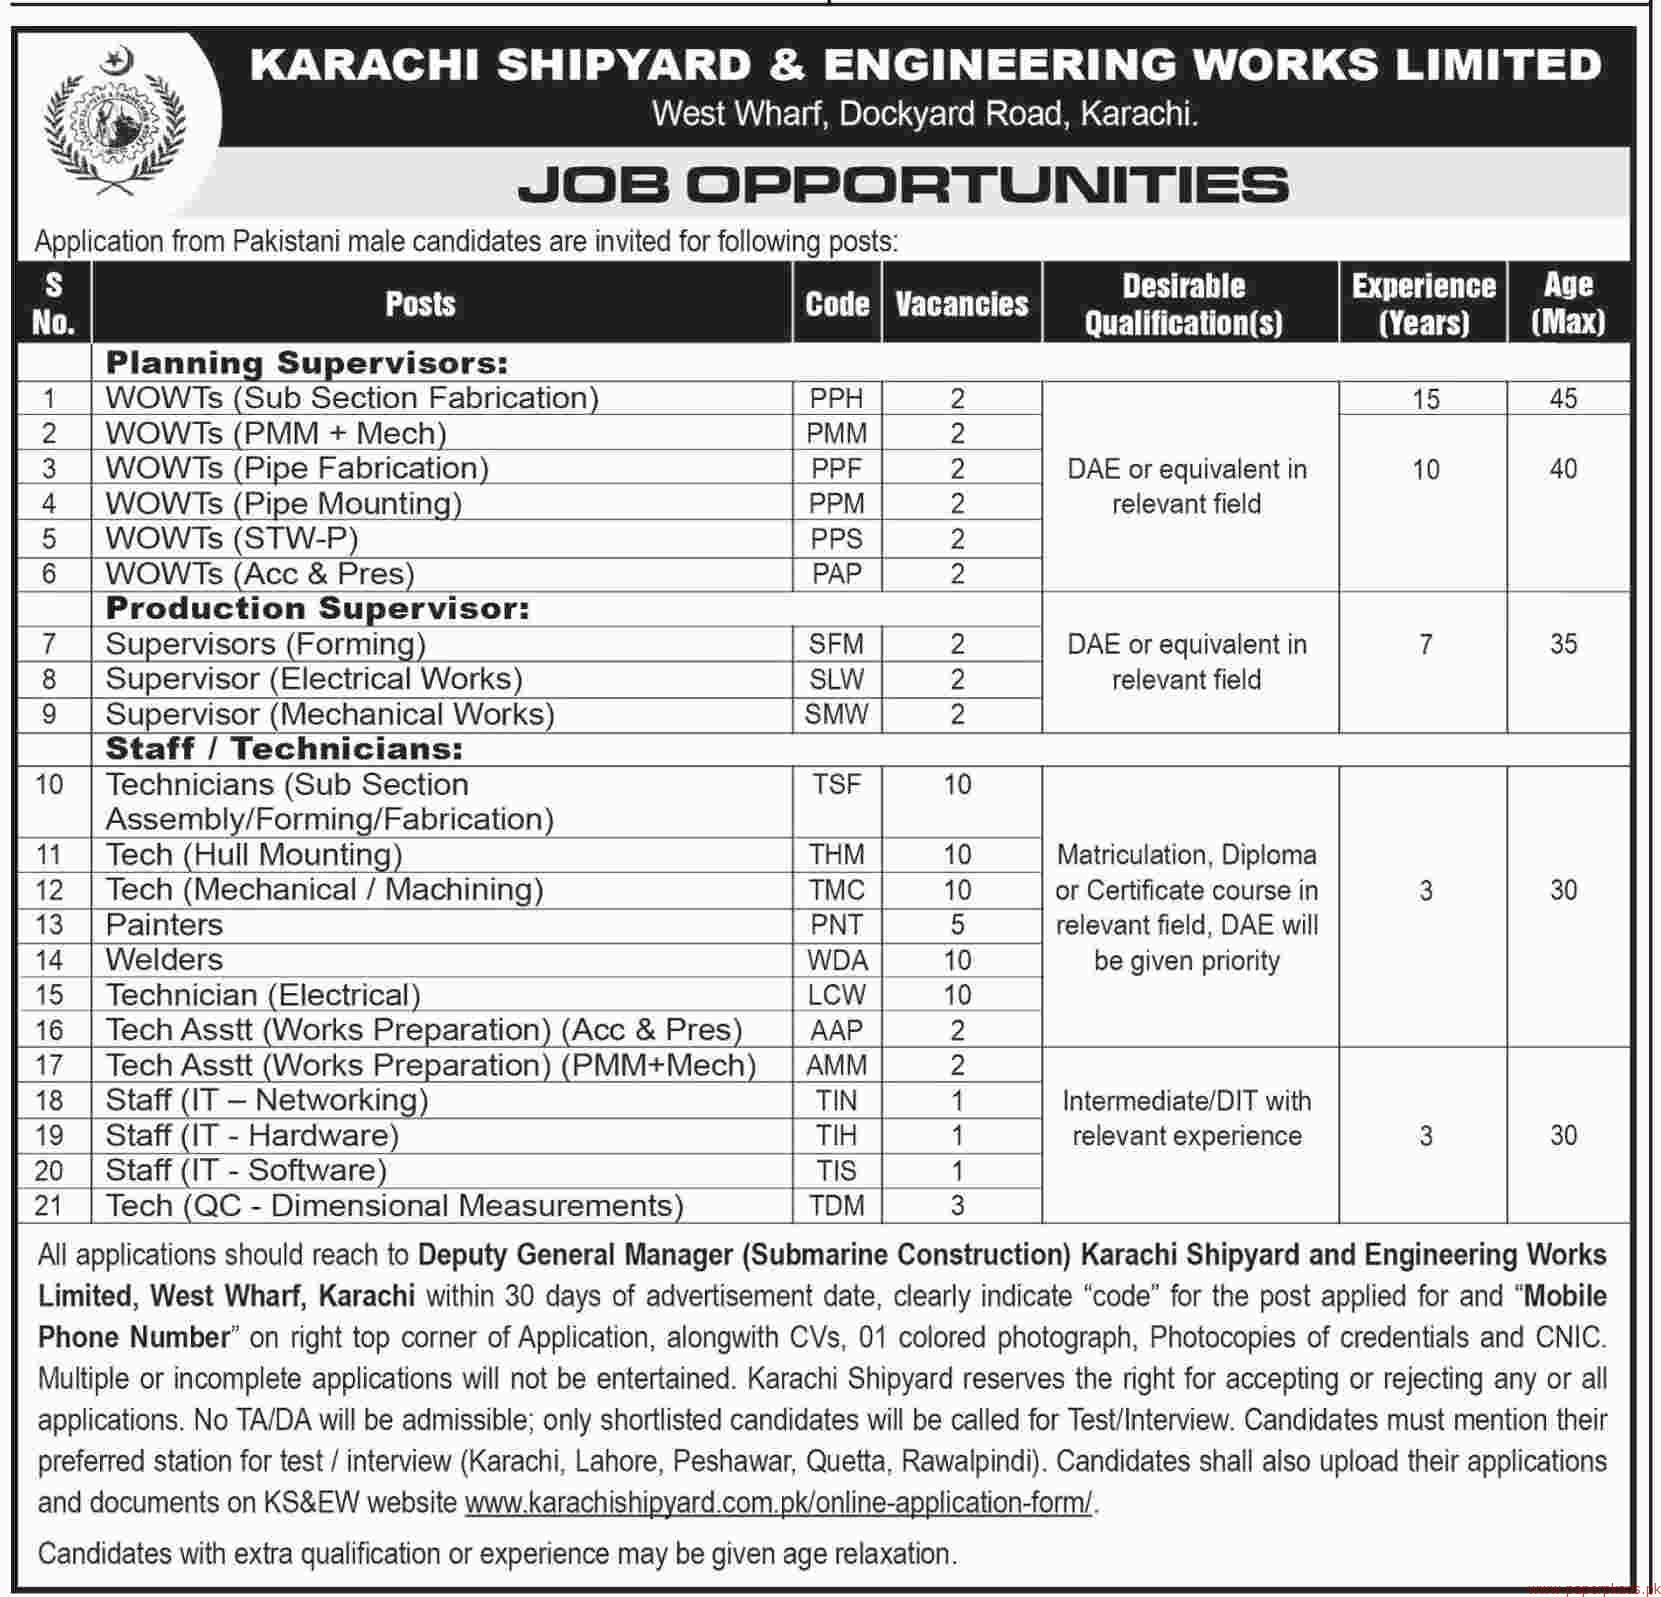 Karachi Shipyard & Engineering Works Limited Jobs 2018